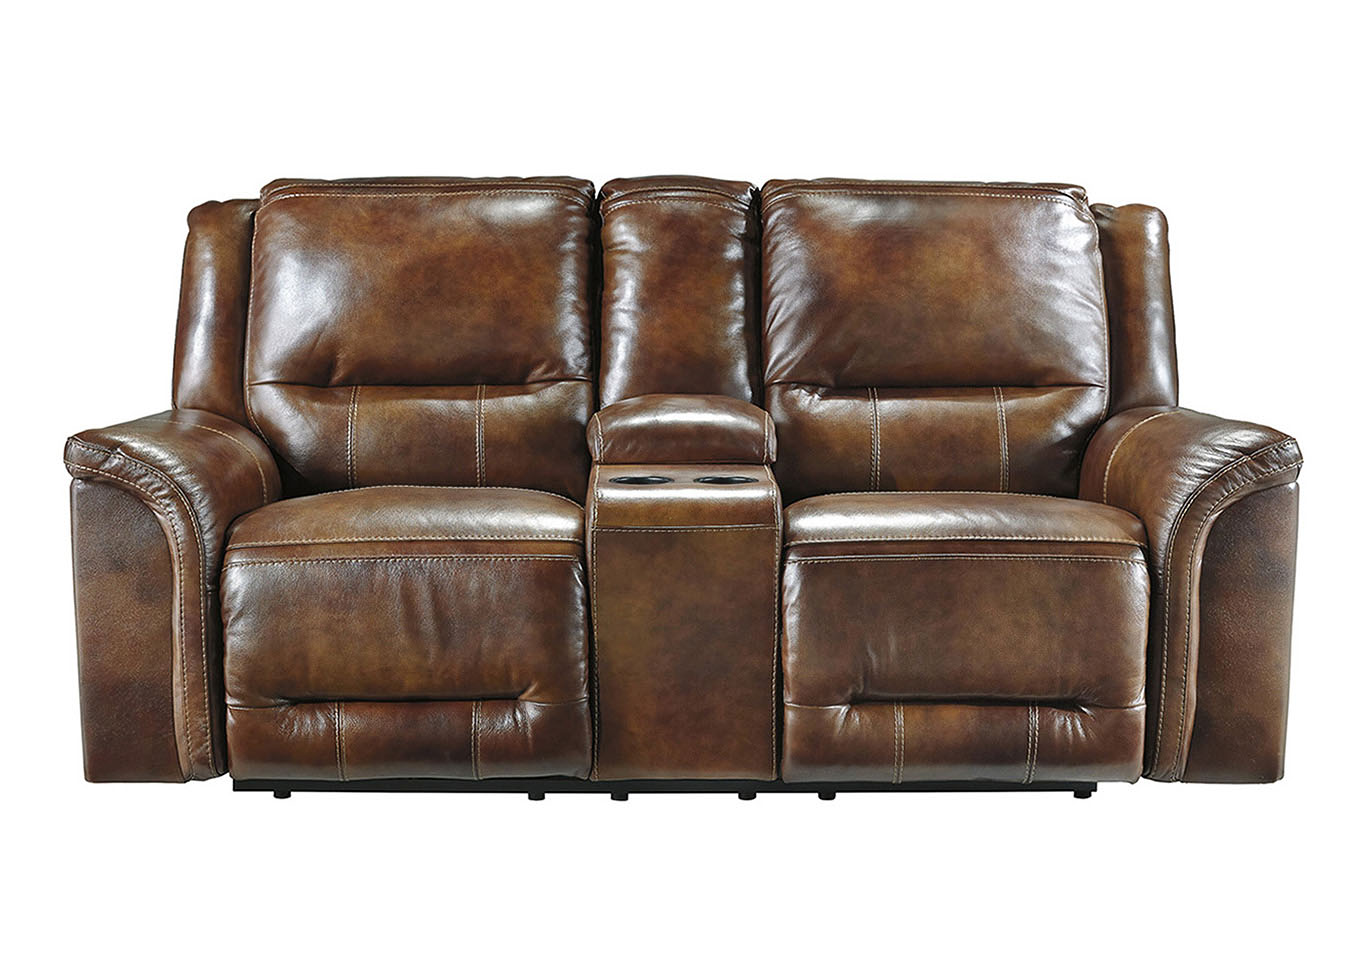 Harlem Furniture Jayron Harness Double Reclining Loveseat